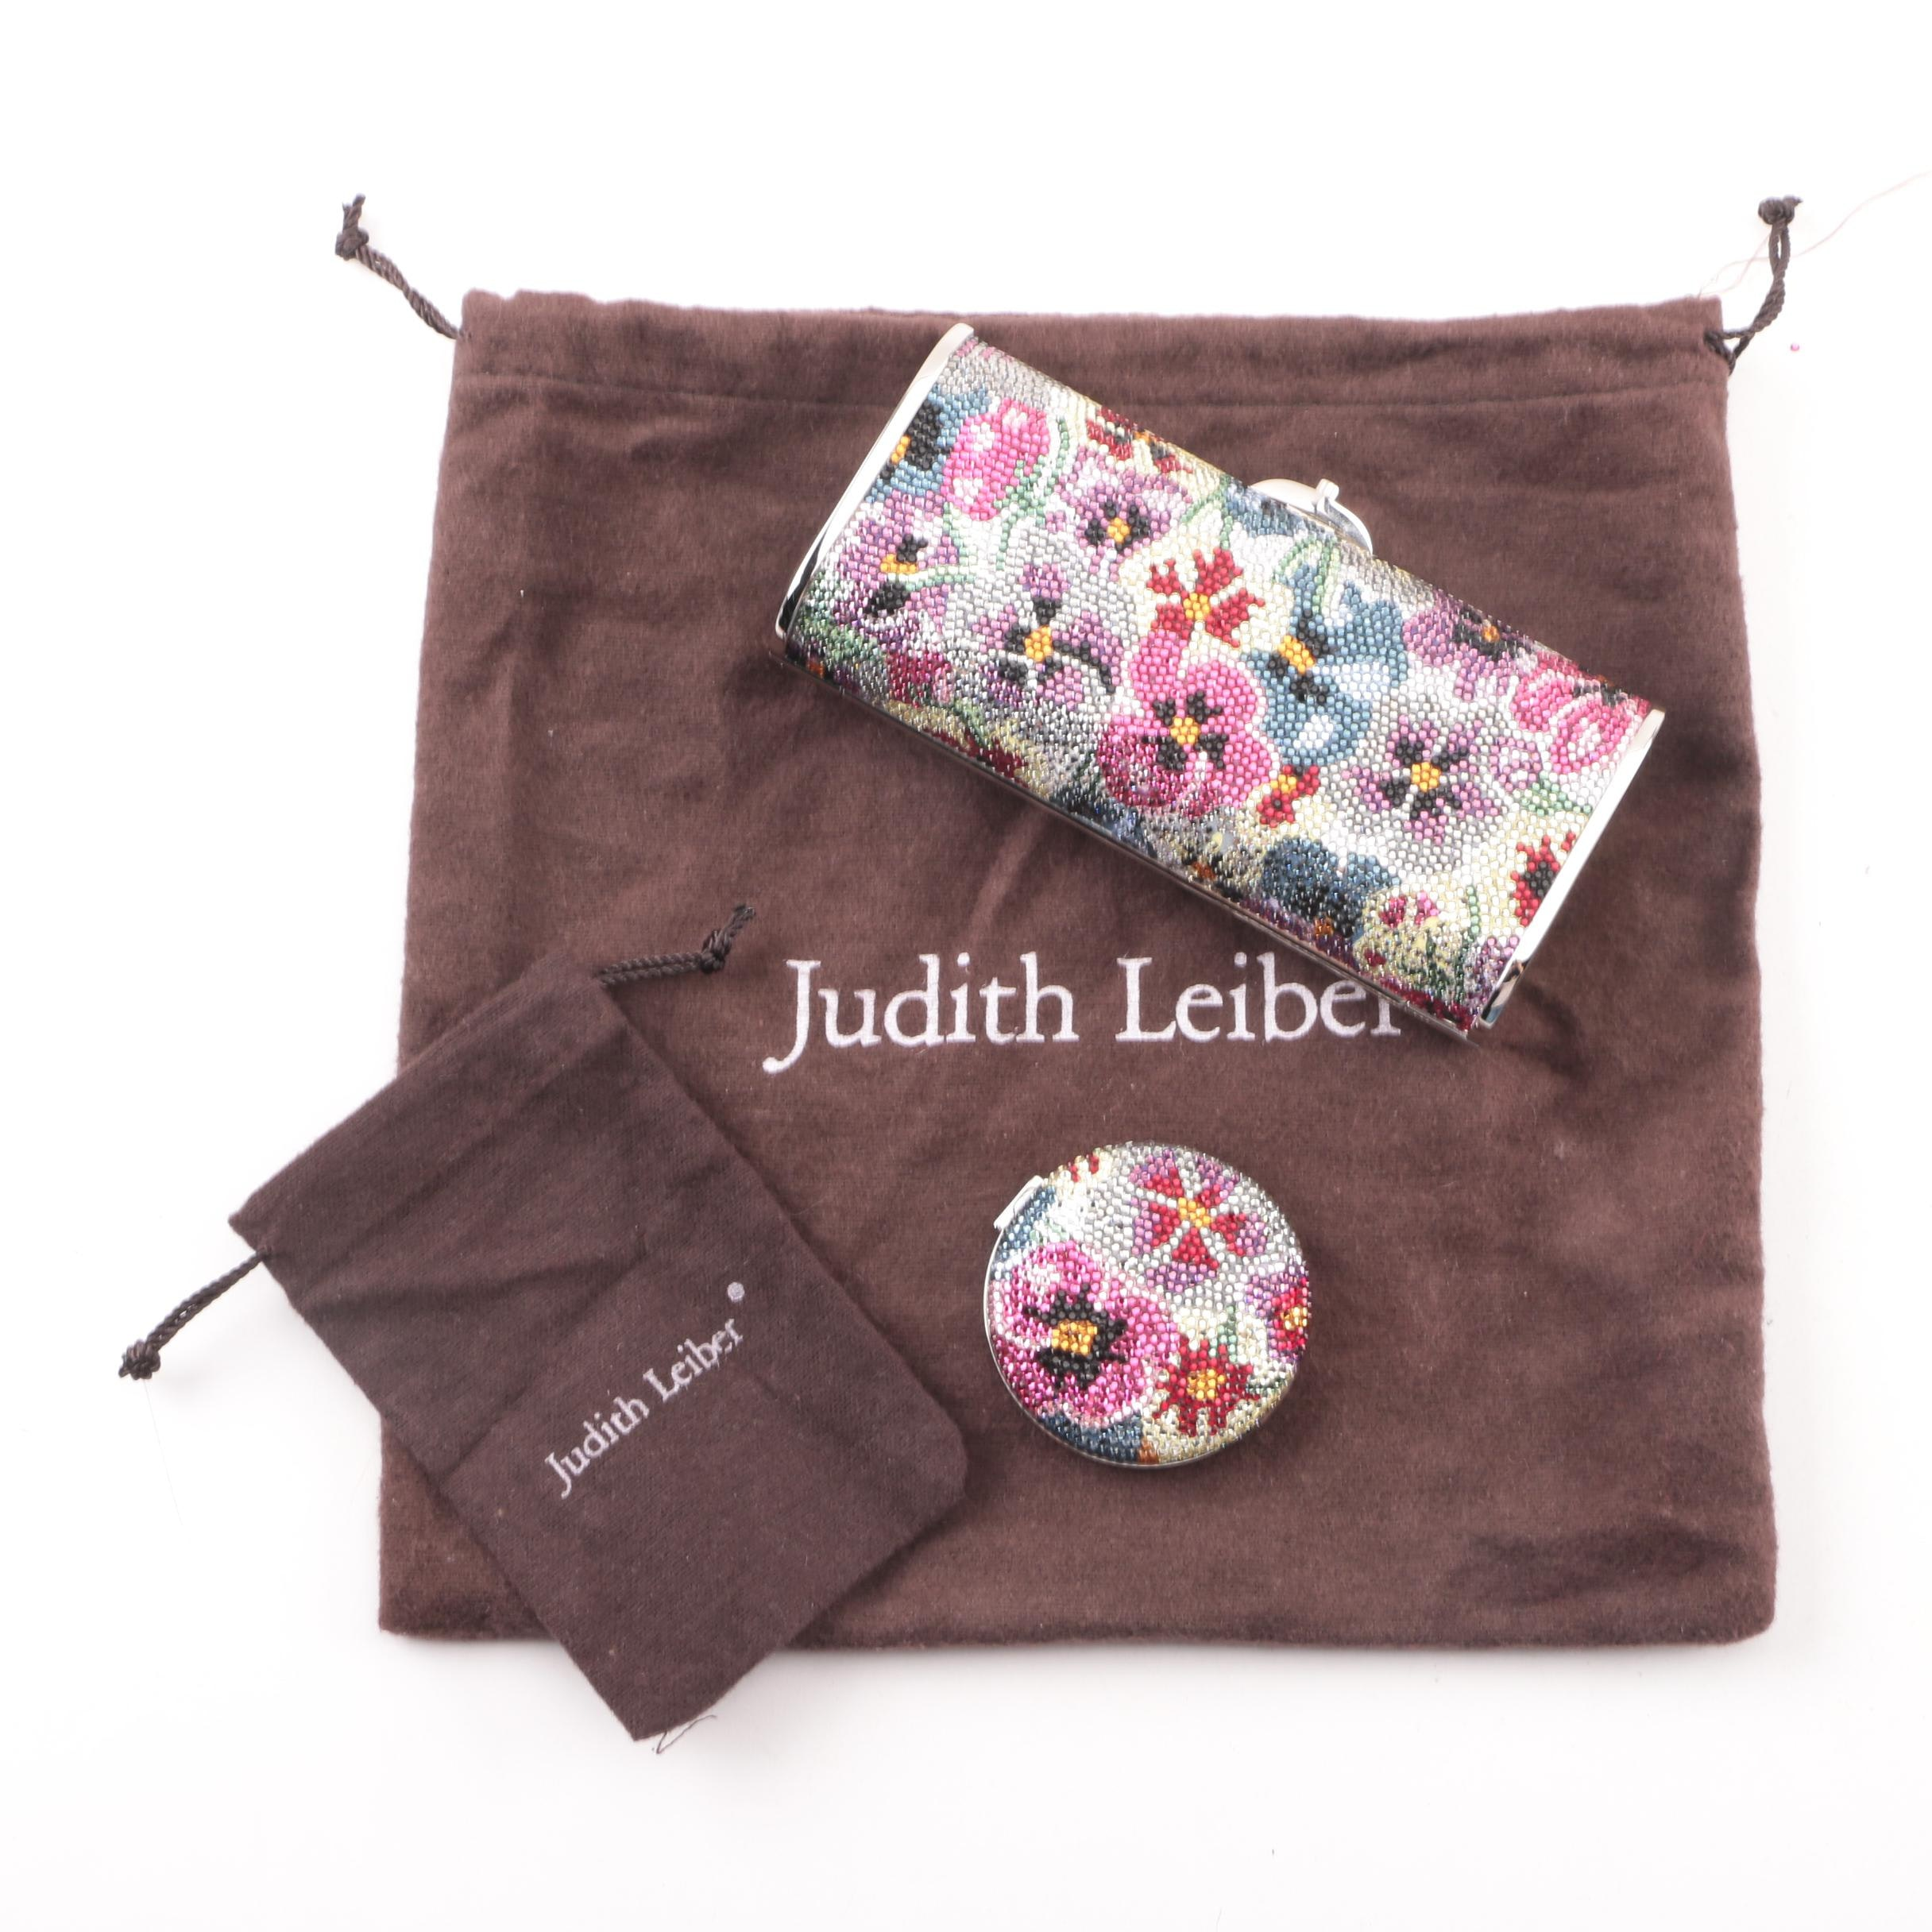 Judith Leiber Crystal Rhinestone Floral Clutch and Powder Compact